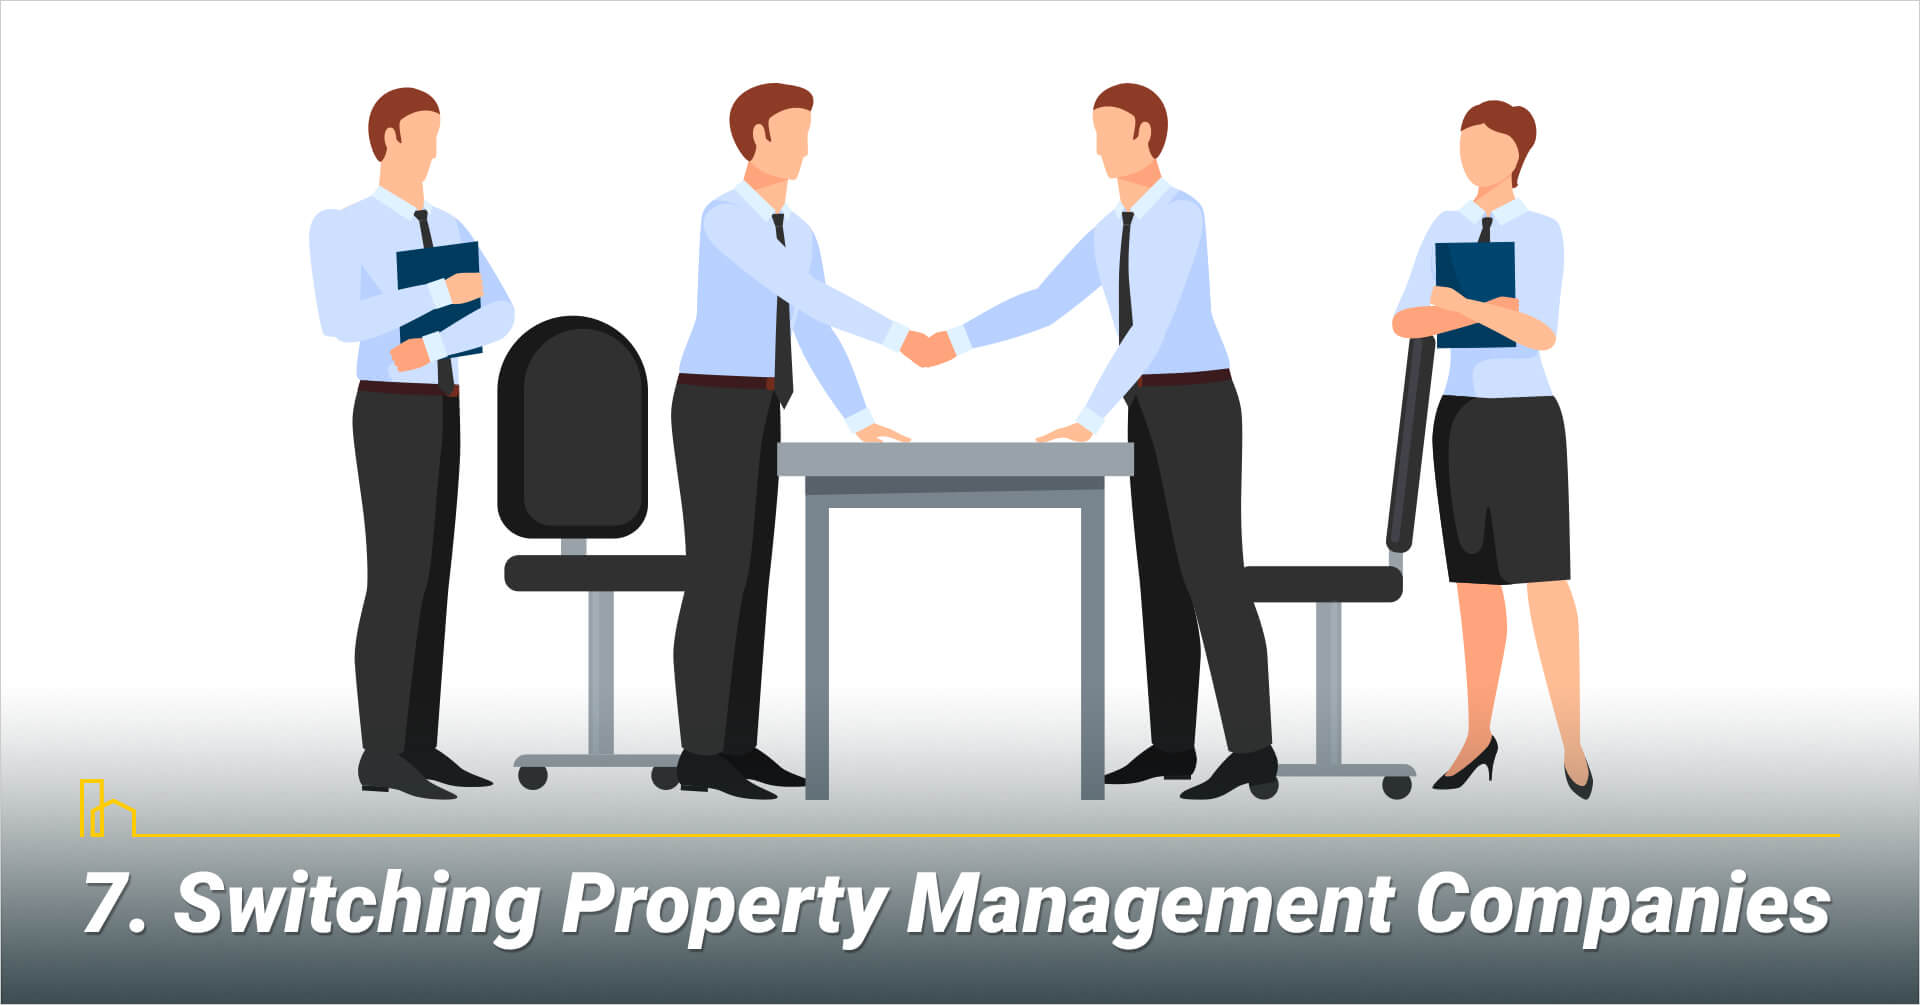 Switching Property Management Companies, have a second thought about the company